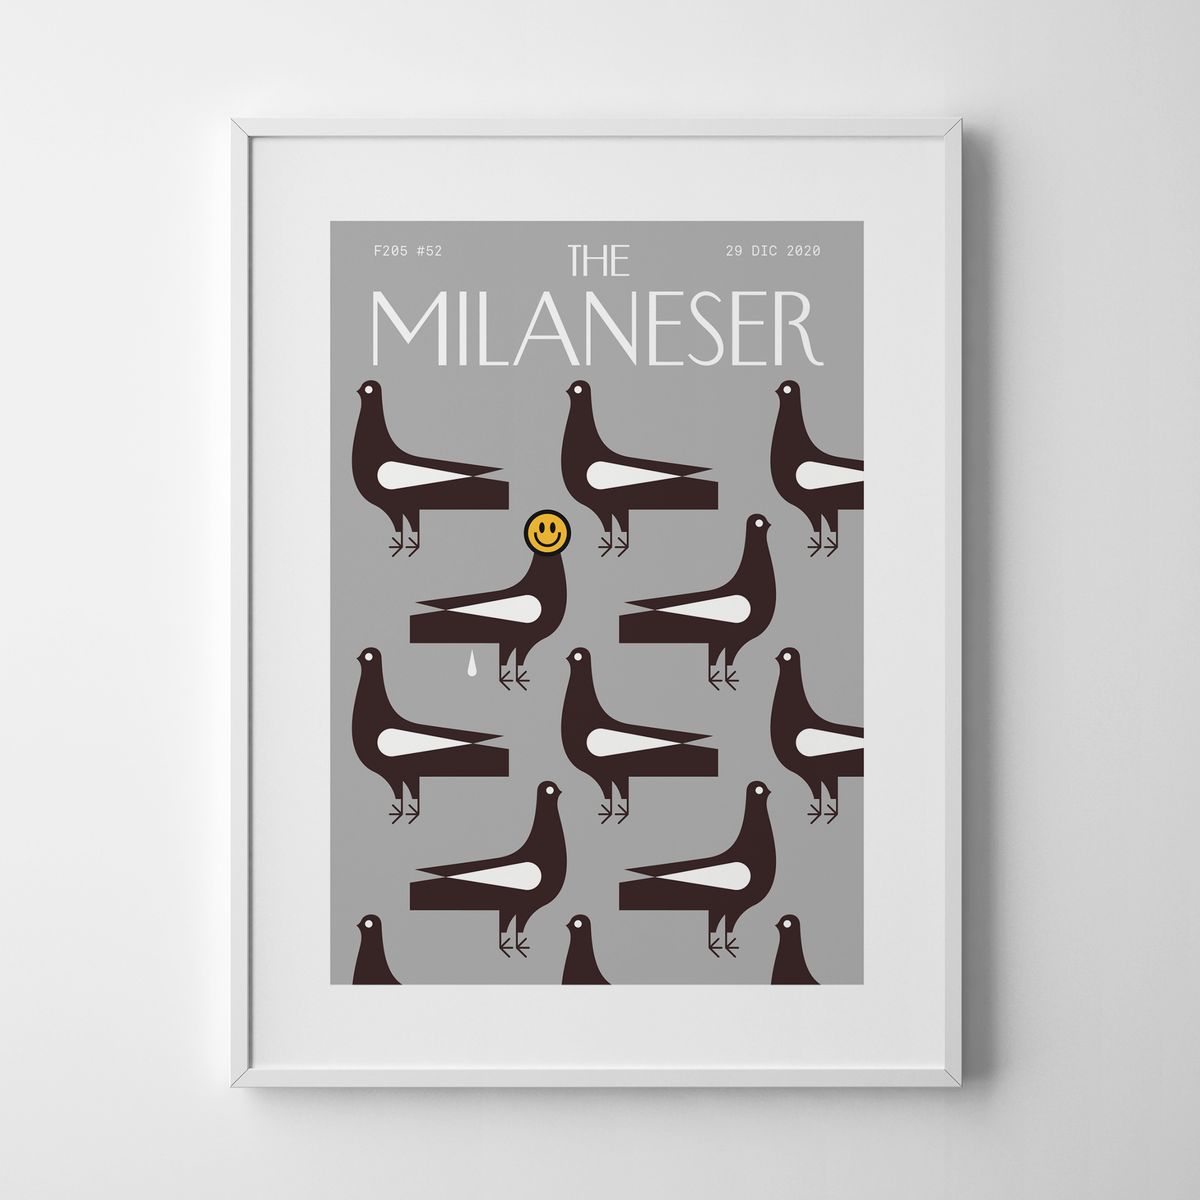 Image of The Milaneser #52